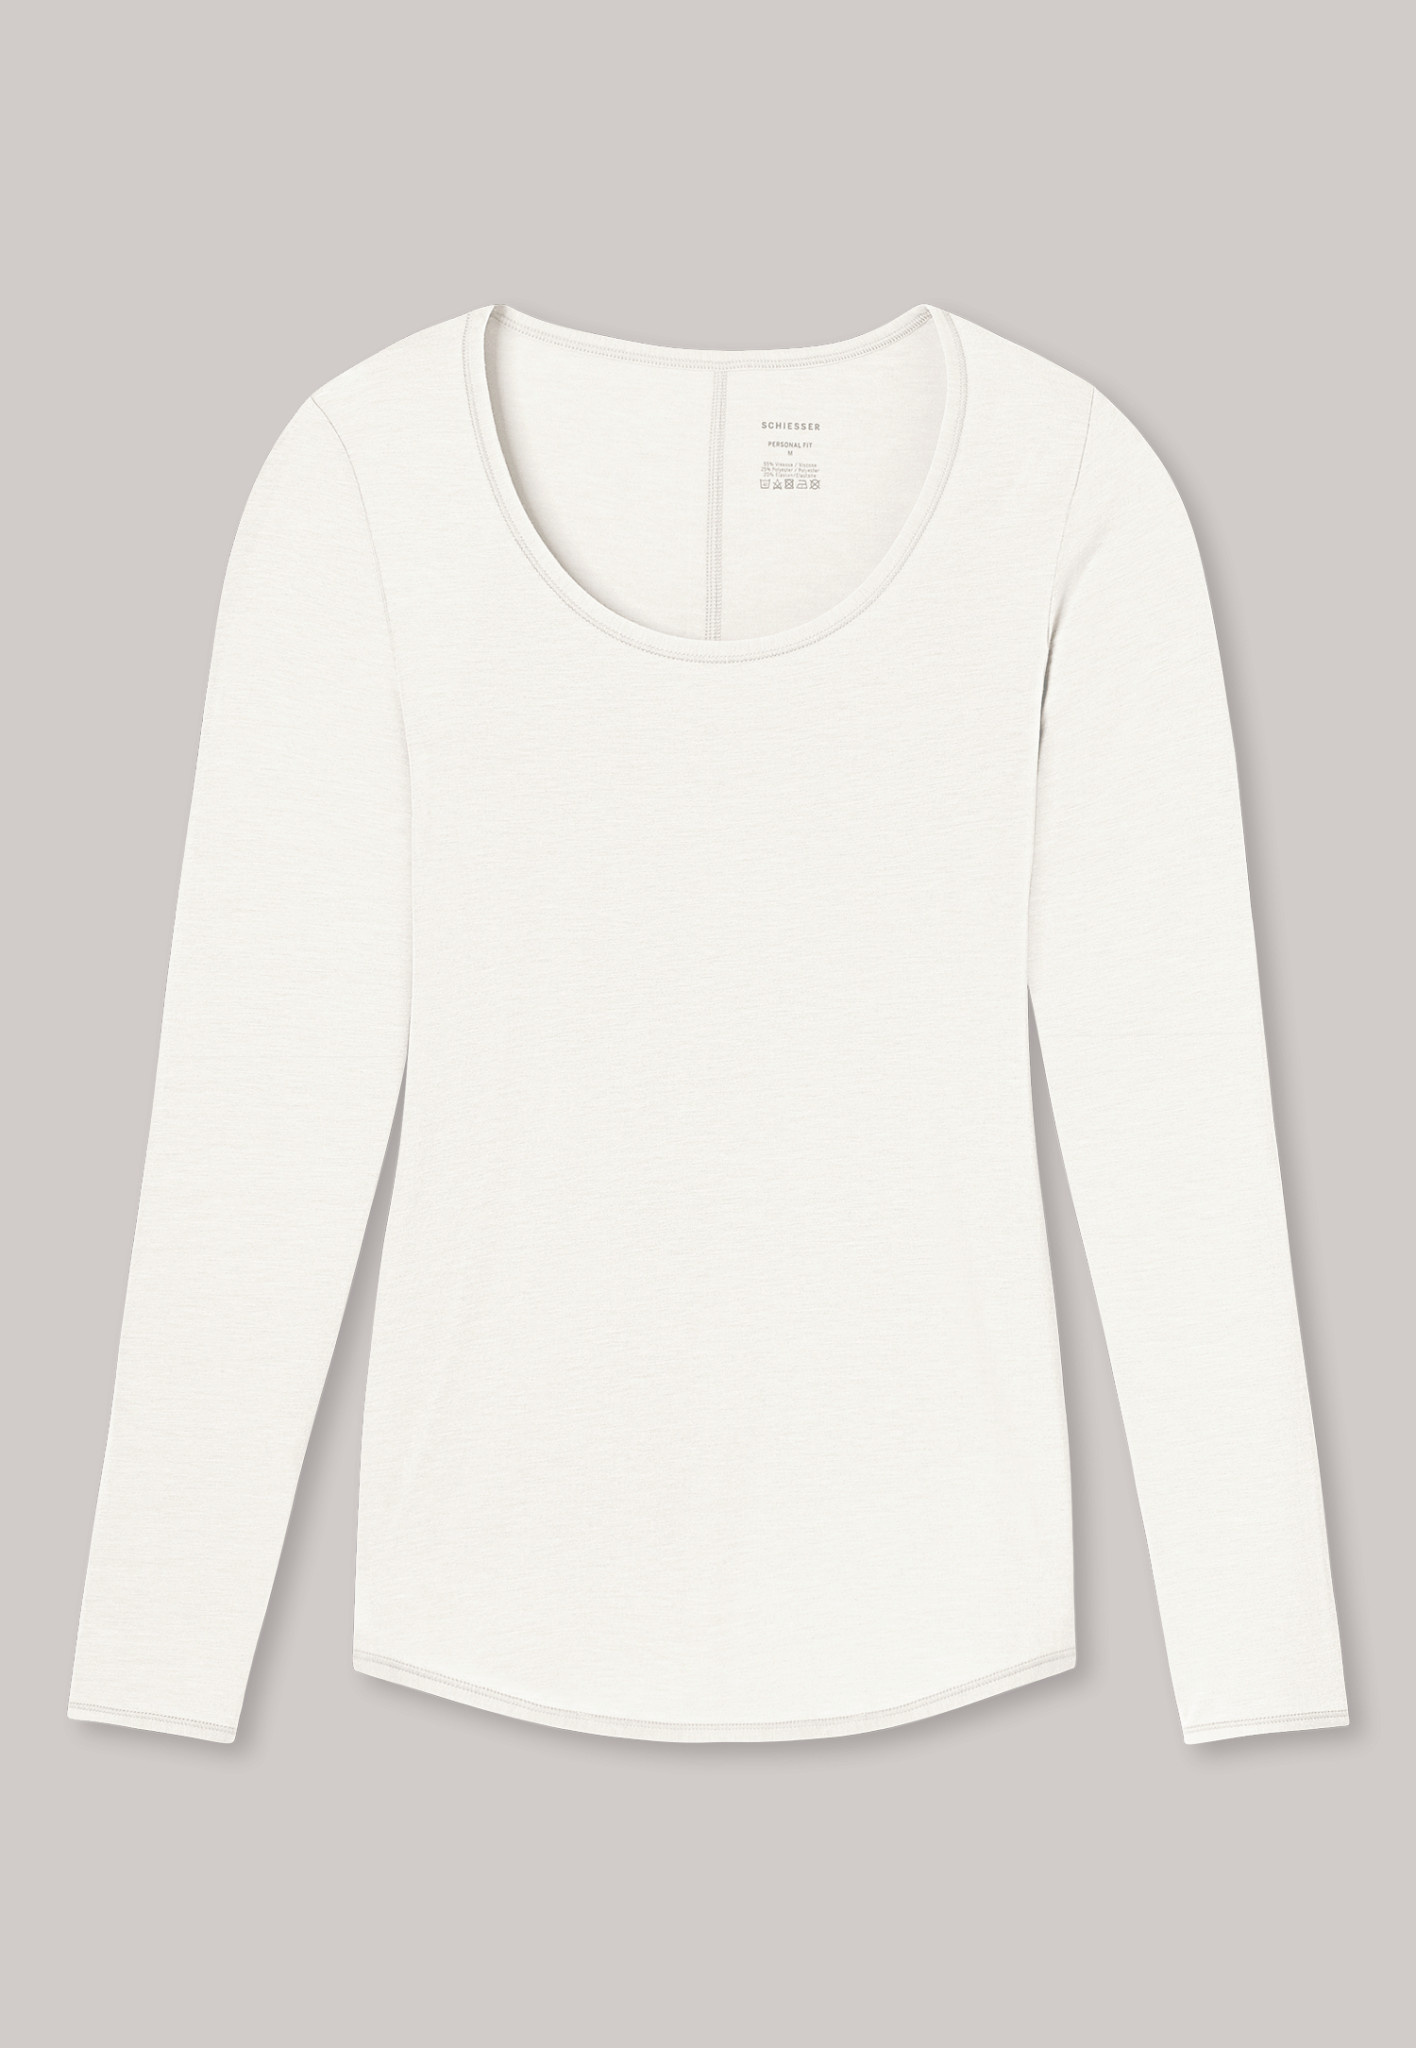 T-shirt Personal Fit lange mouw 155414 - offwhite-3